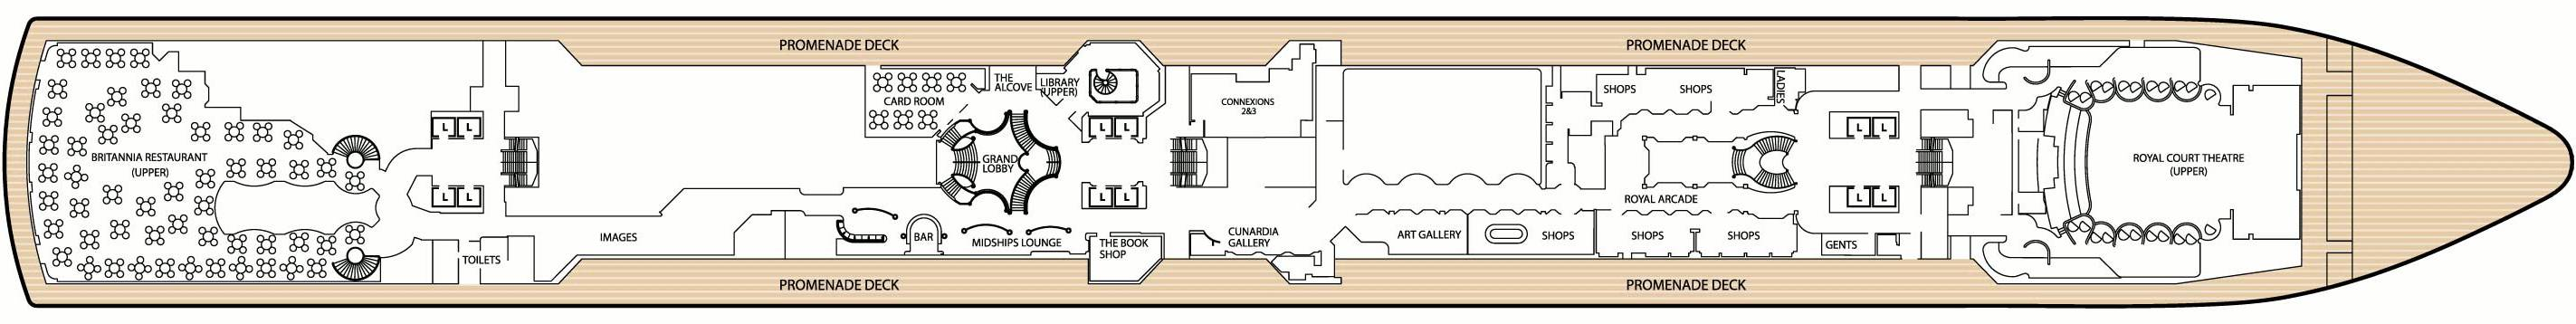 cabin plan queen victoria